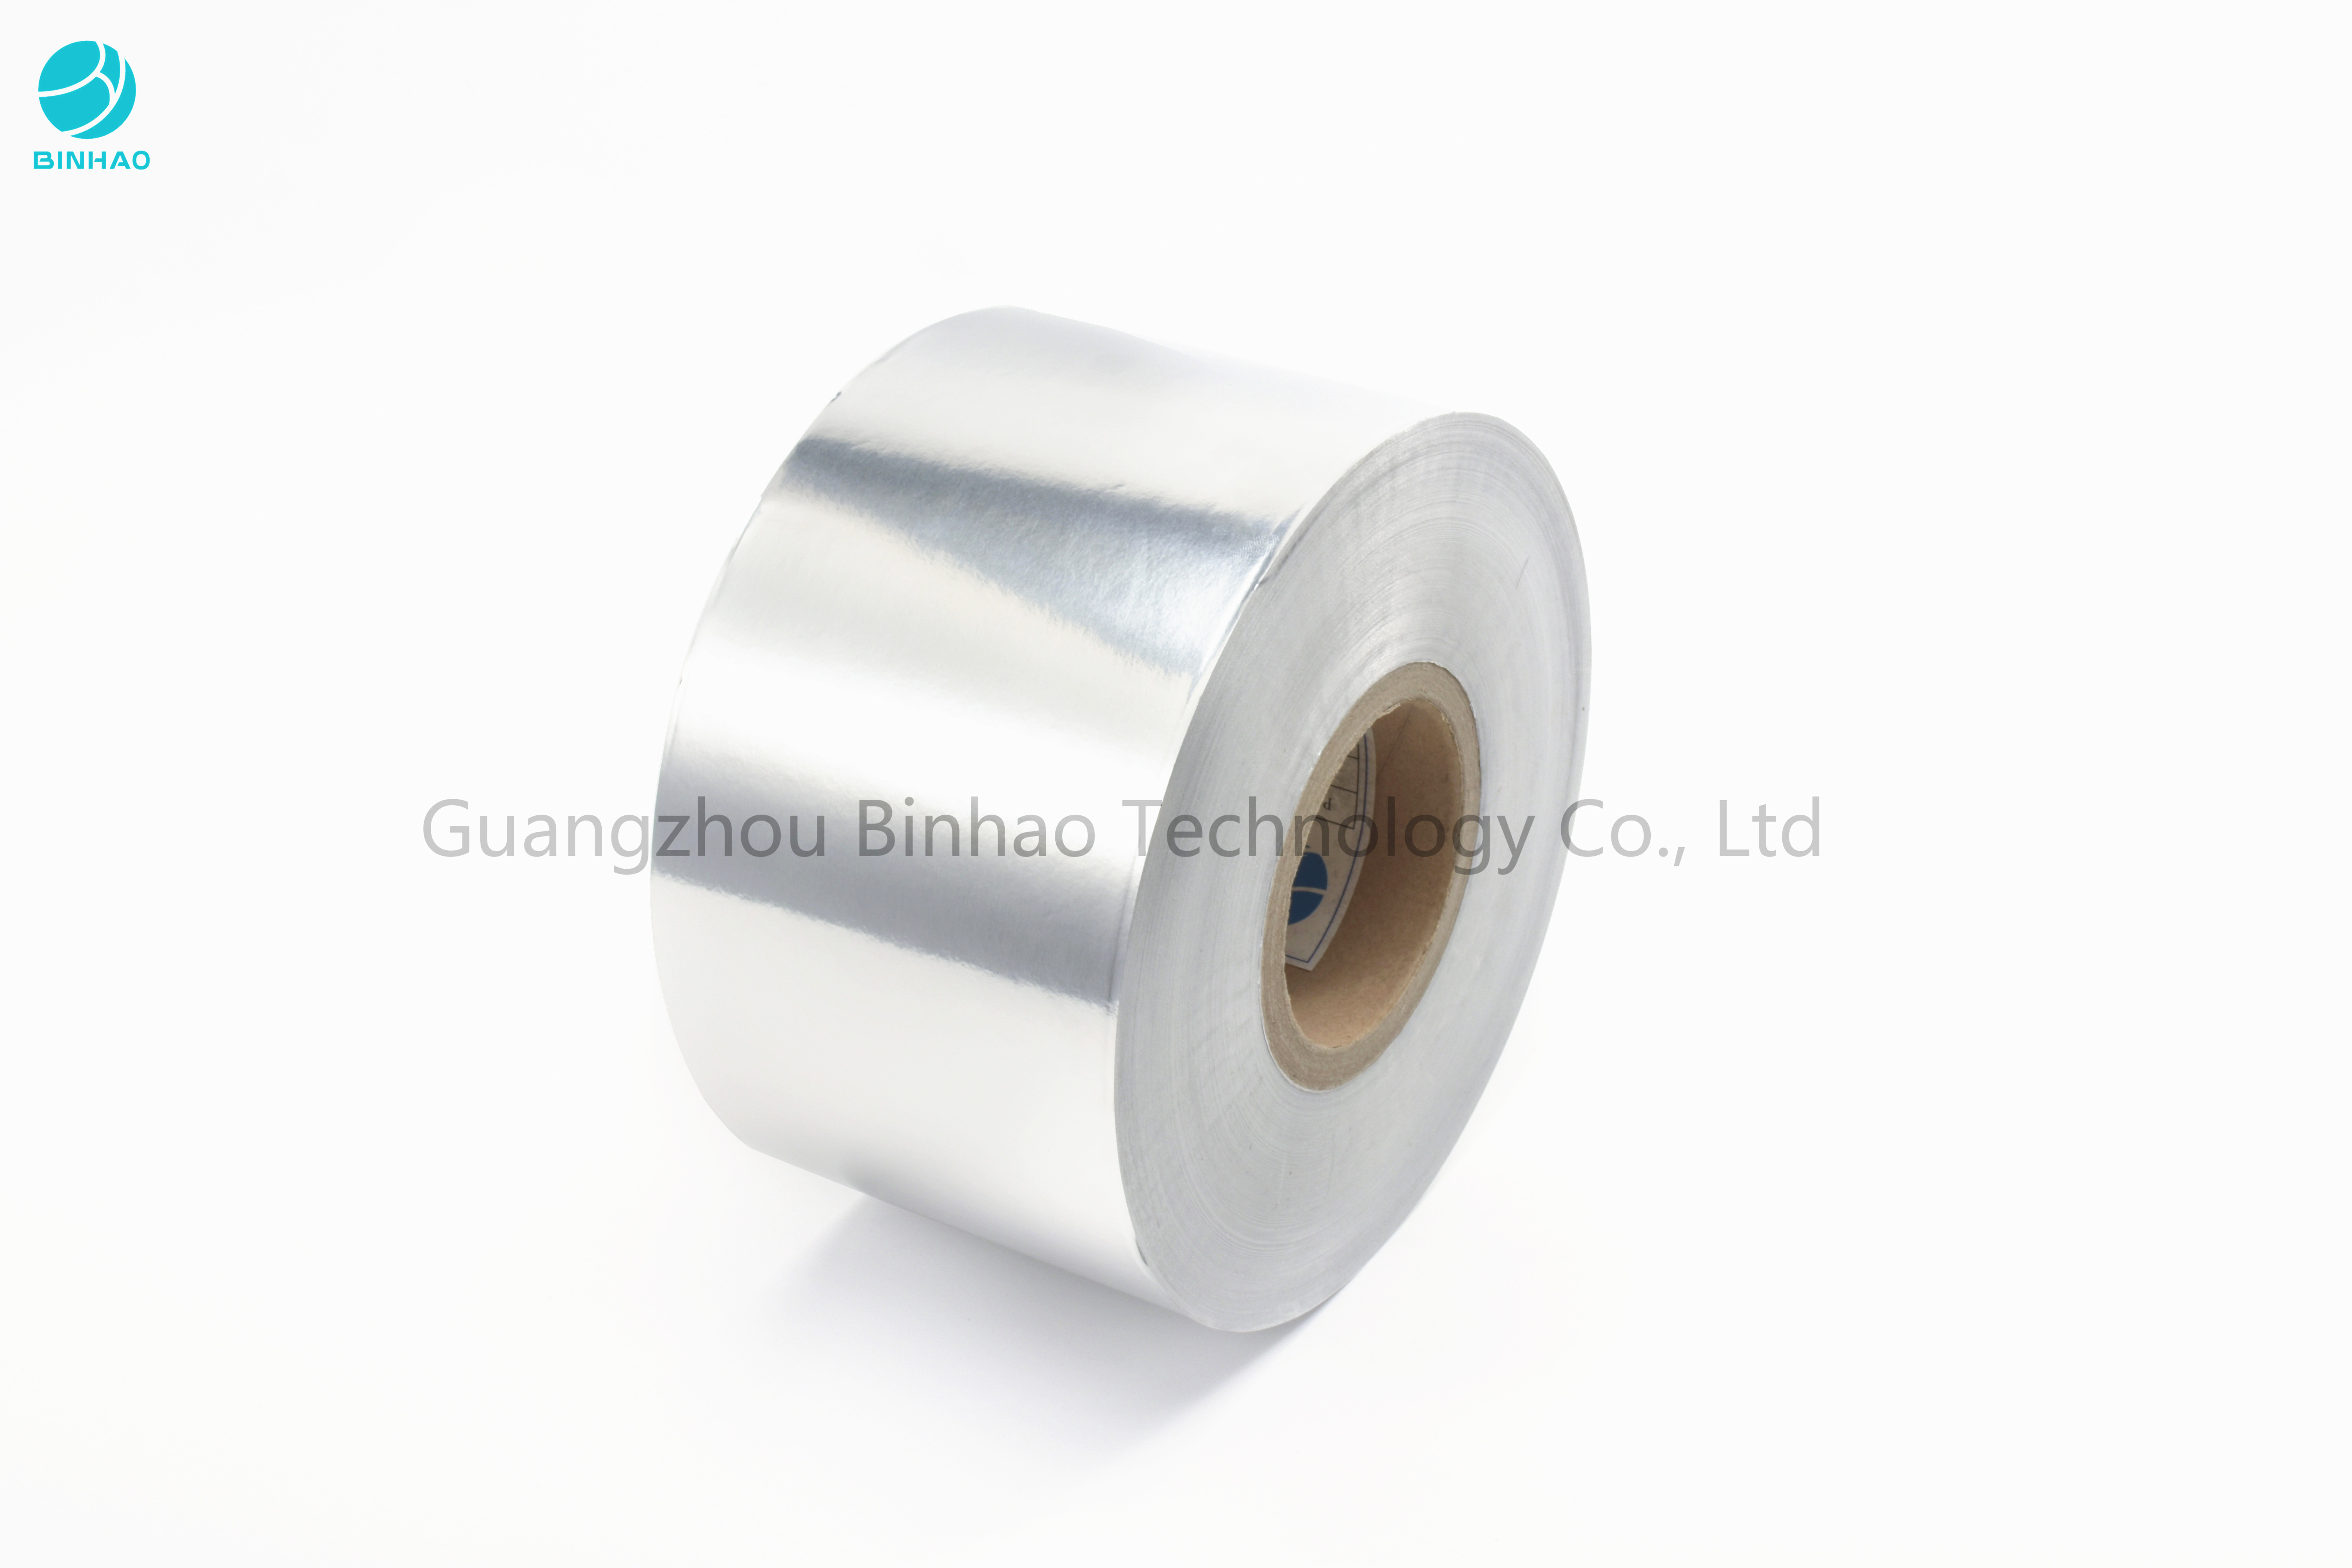 50g Shiny Silver Baking Aluminium Foil Paper For Cigarette Packet  Inner Liner Chocolate Packing